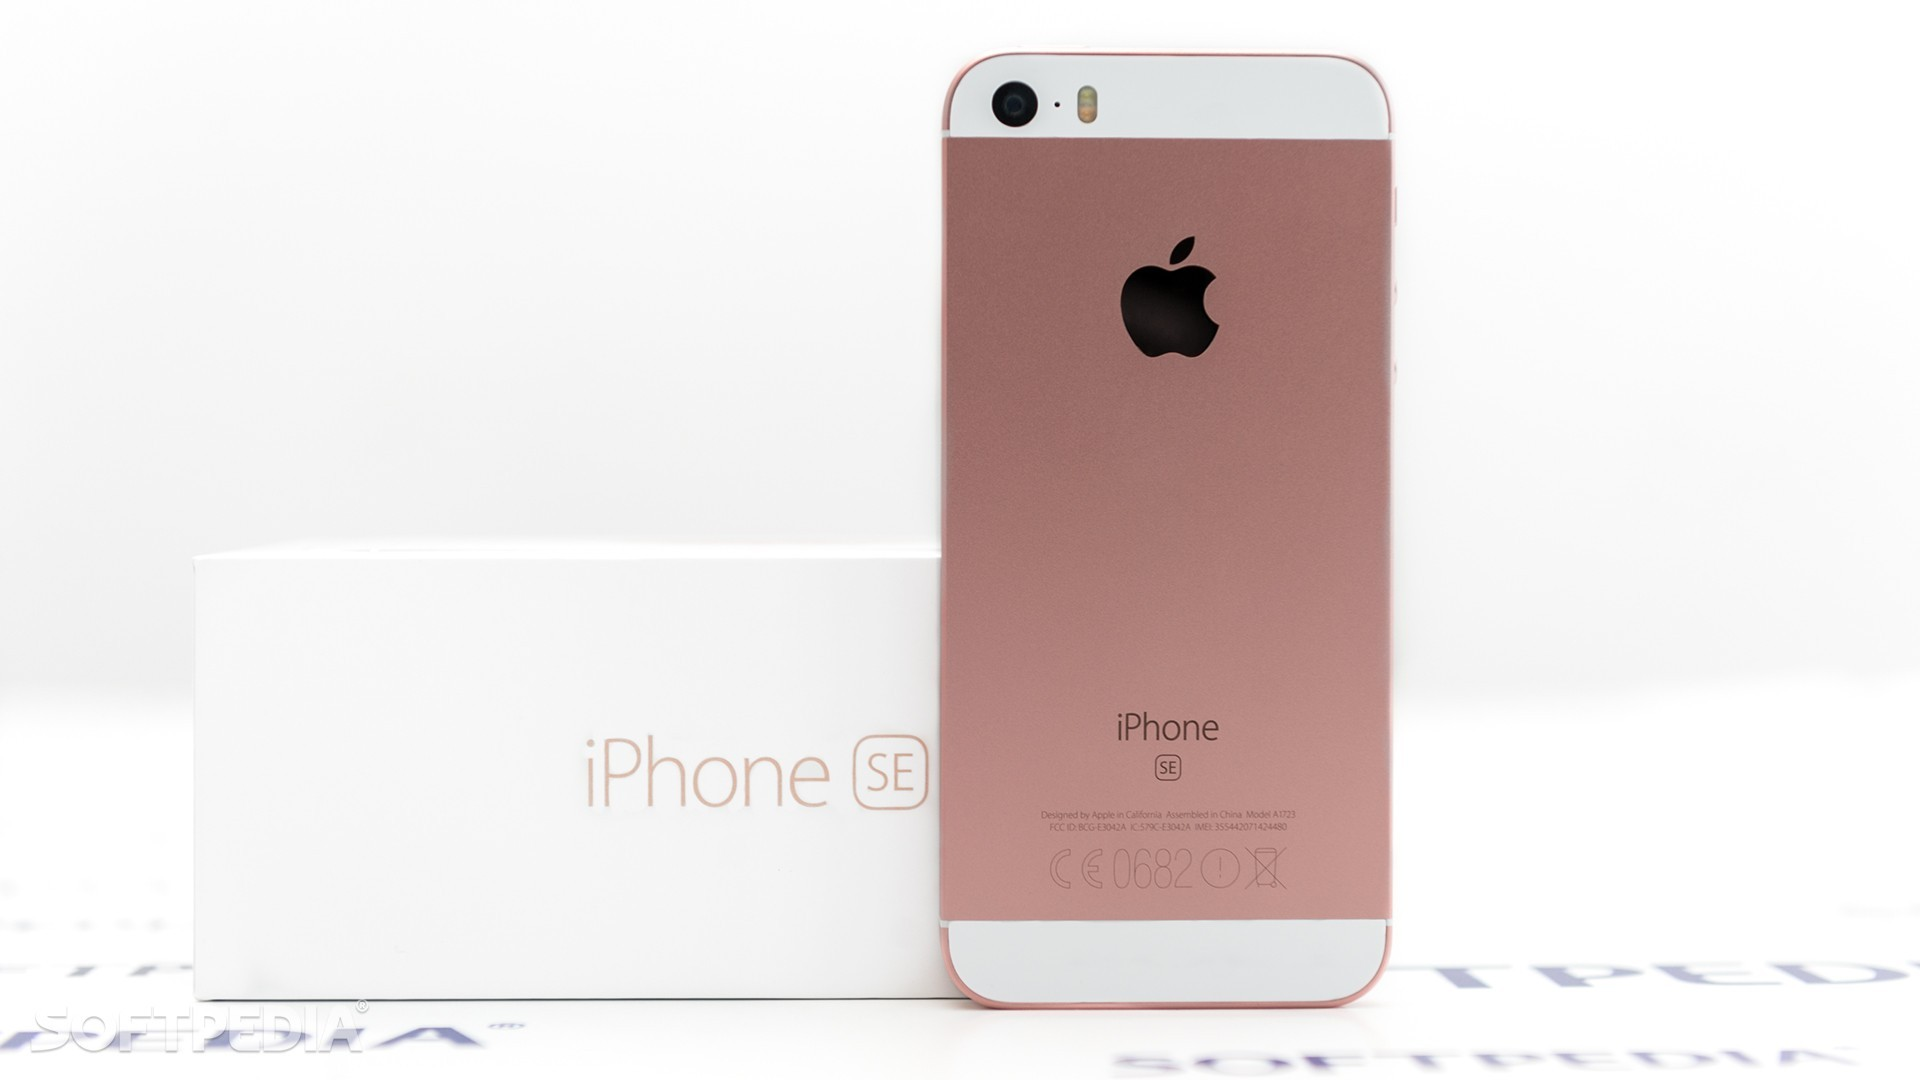 Apple's iPhone SE is back